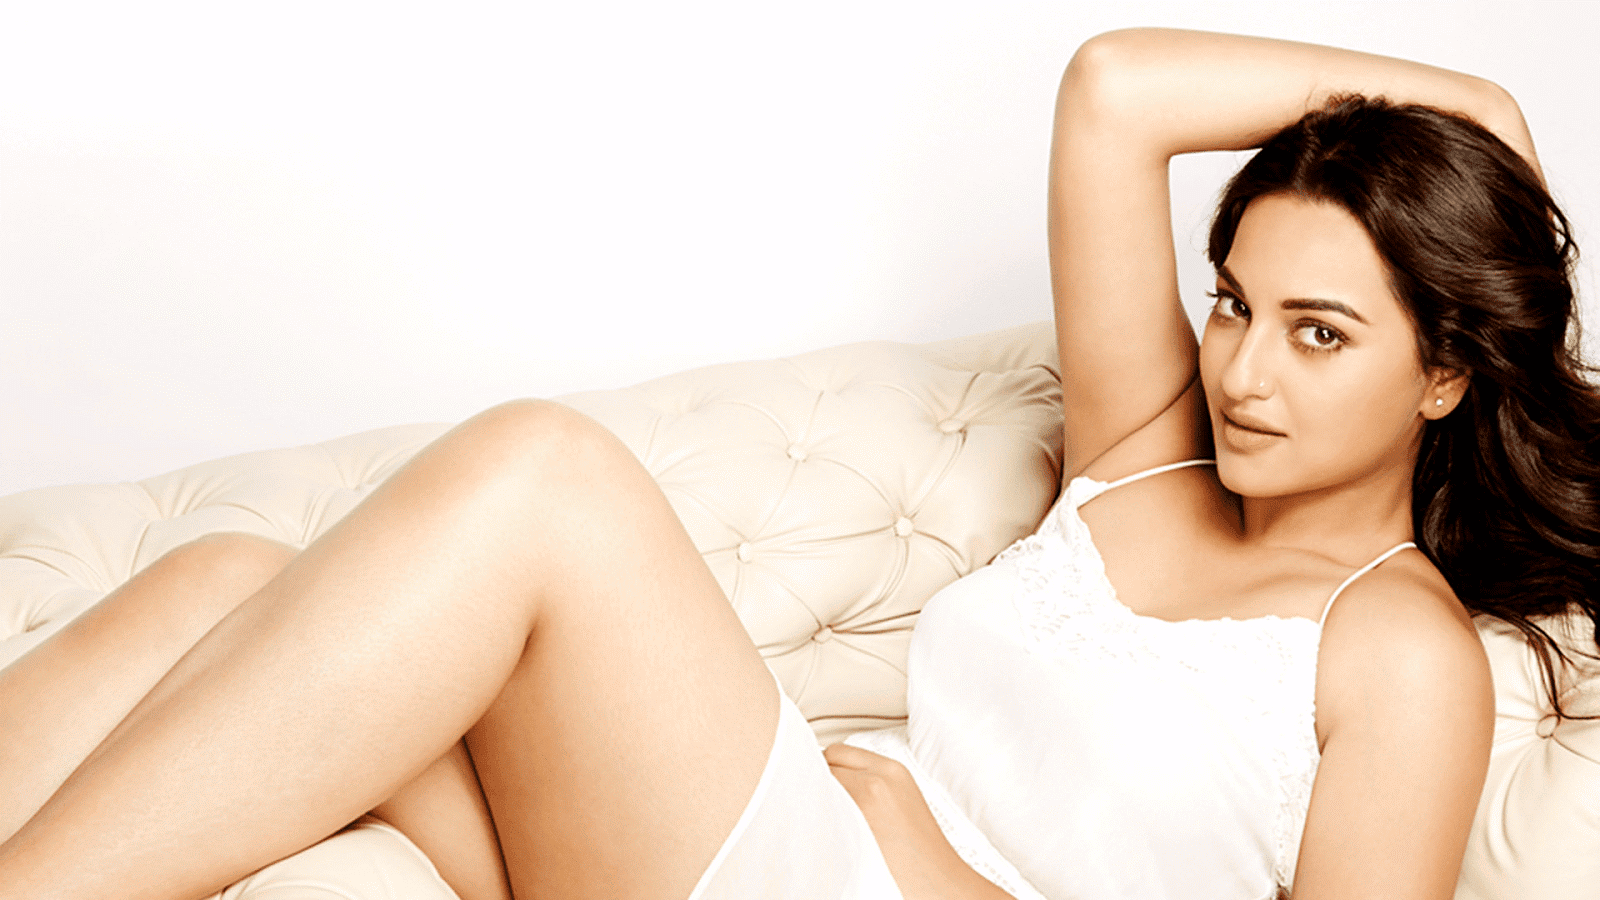 Sonakshi Sinha Wallpapers Hd Download gratis 1080P-3407